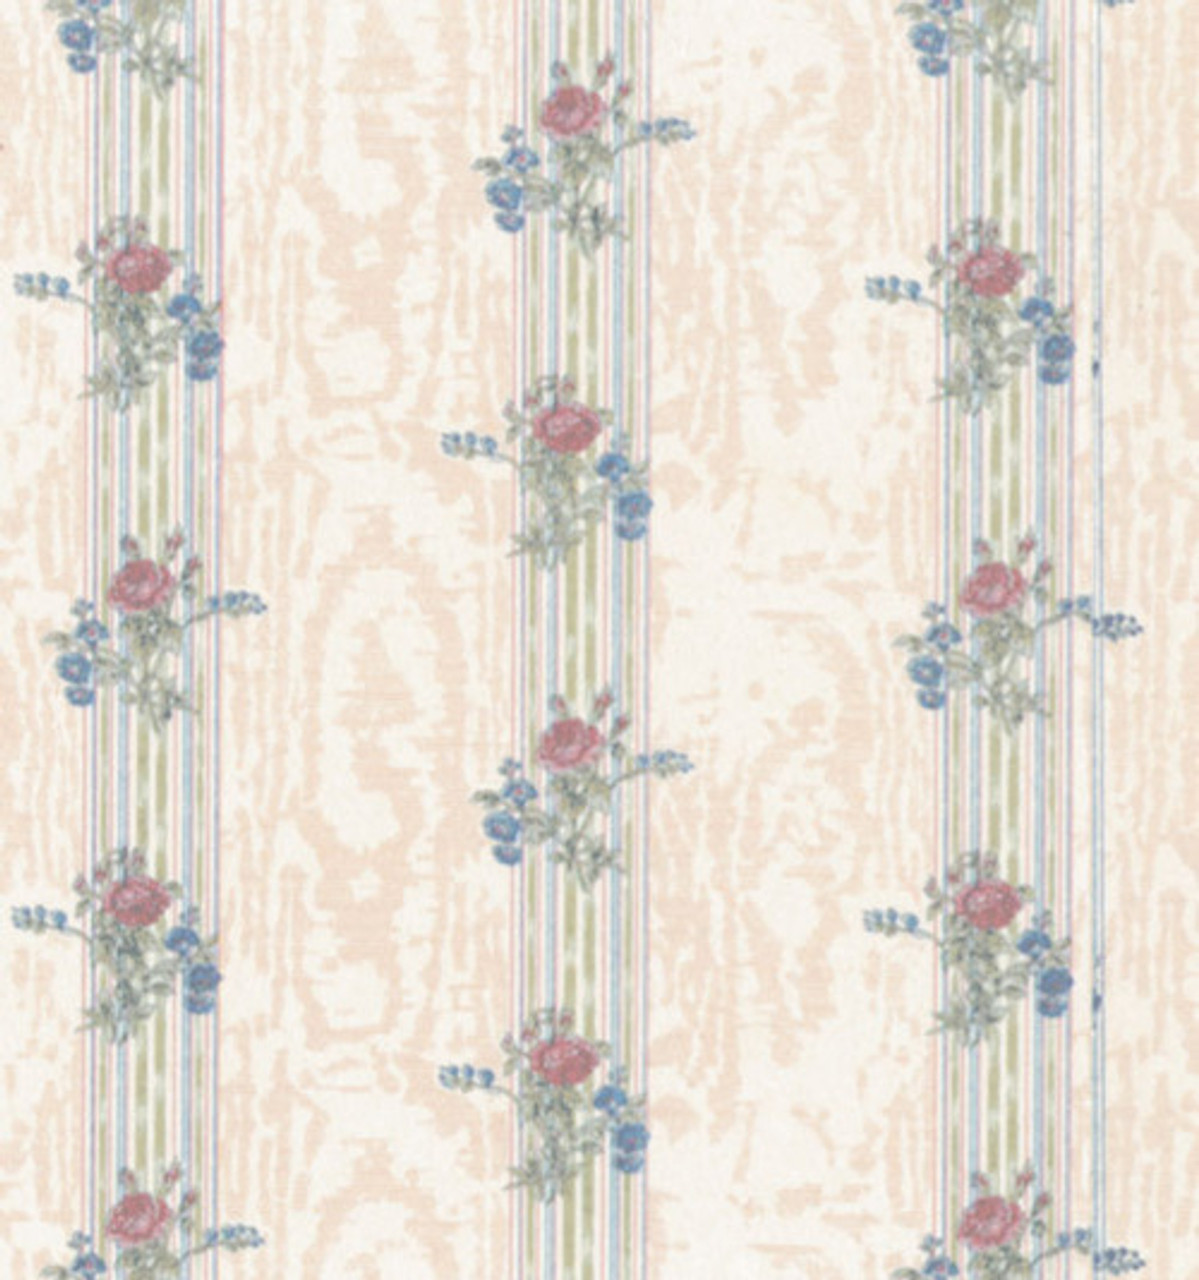 Wallpaper Reflections Set - Cream and Rose